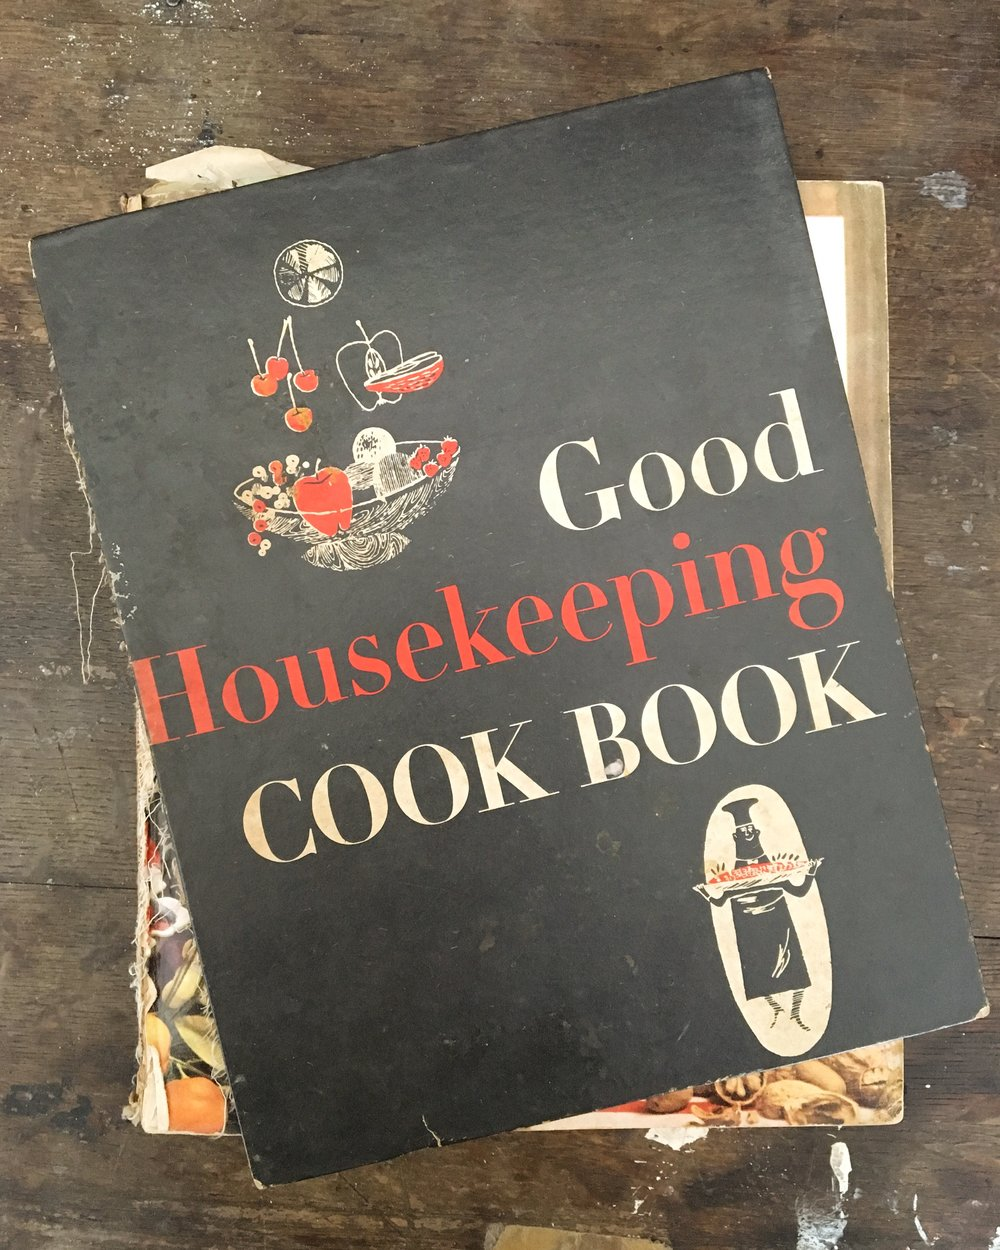 My sweet Nana's cook book. It's tattered and filled with clippings, Christmas gift lists, notes about things she wanted to remember. Good Housekeeping Cook book, 1955